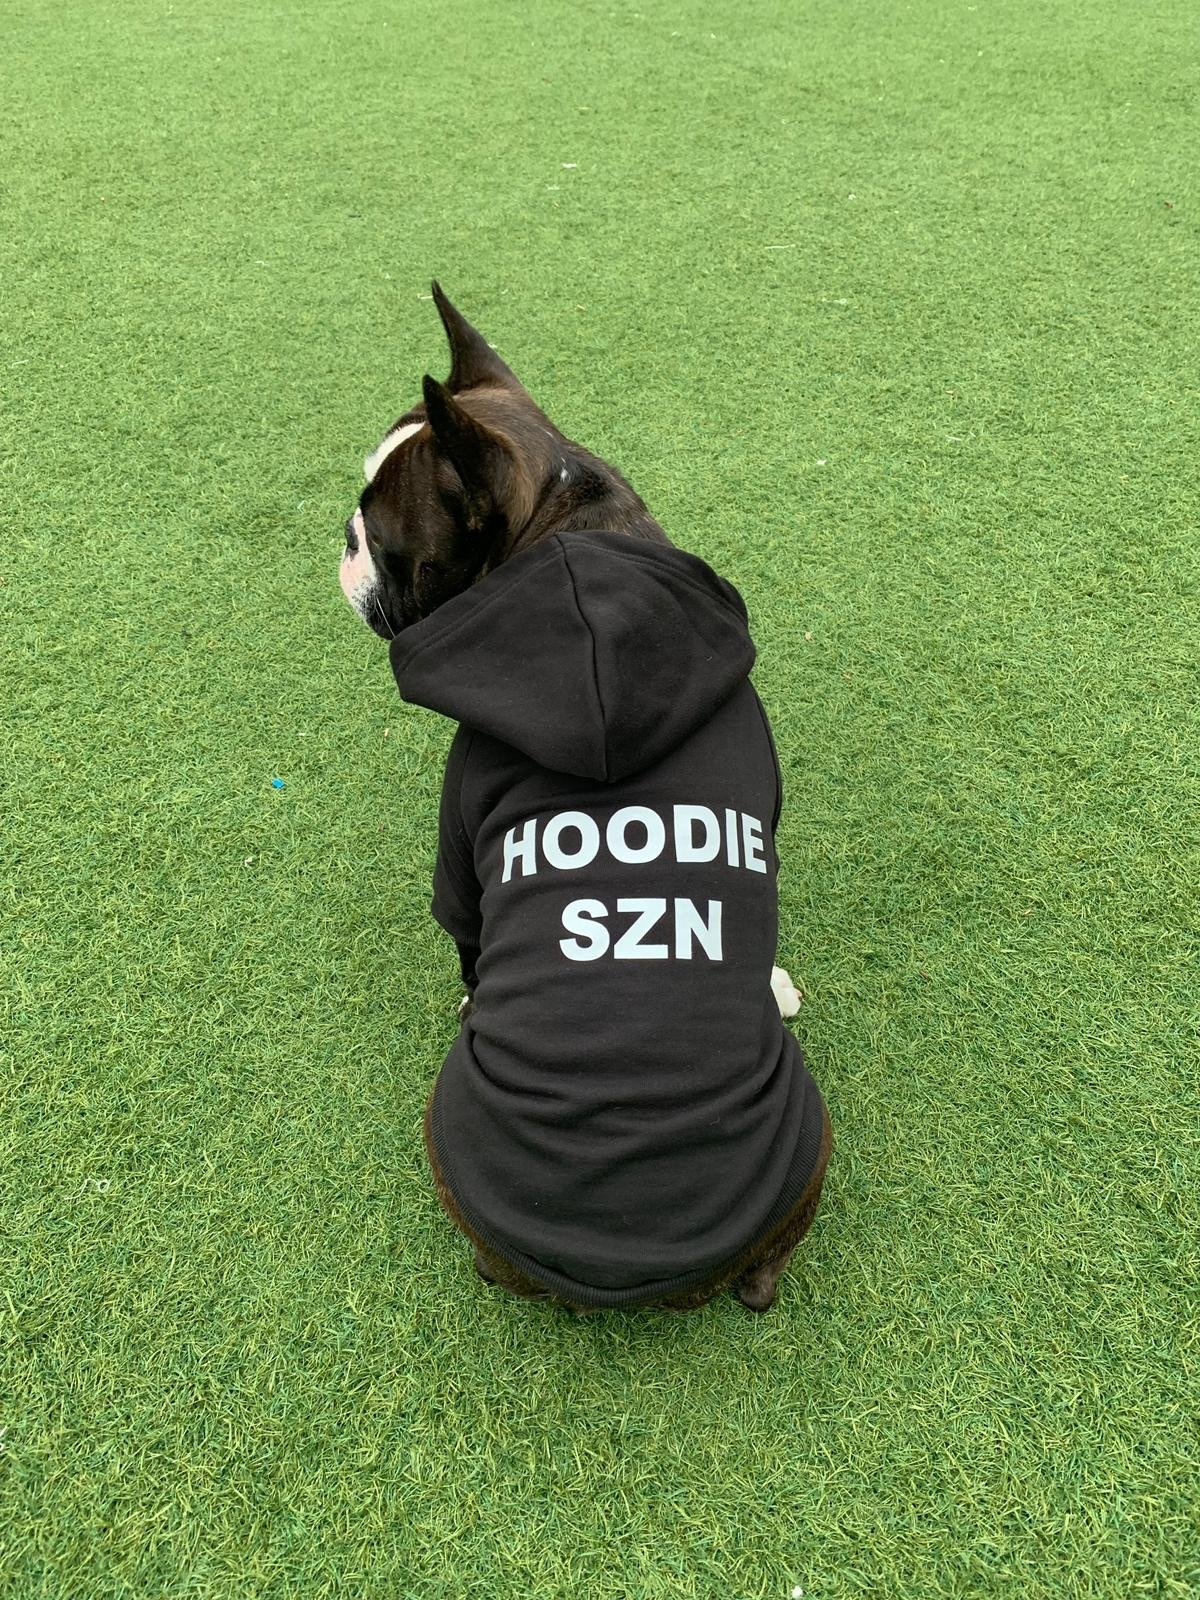 Hoodie SZN - Furbaby Couture